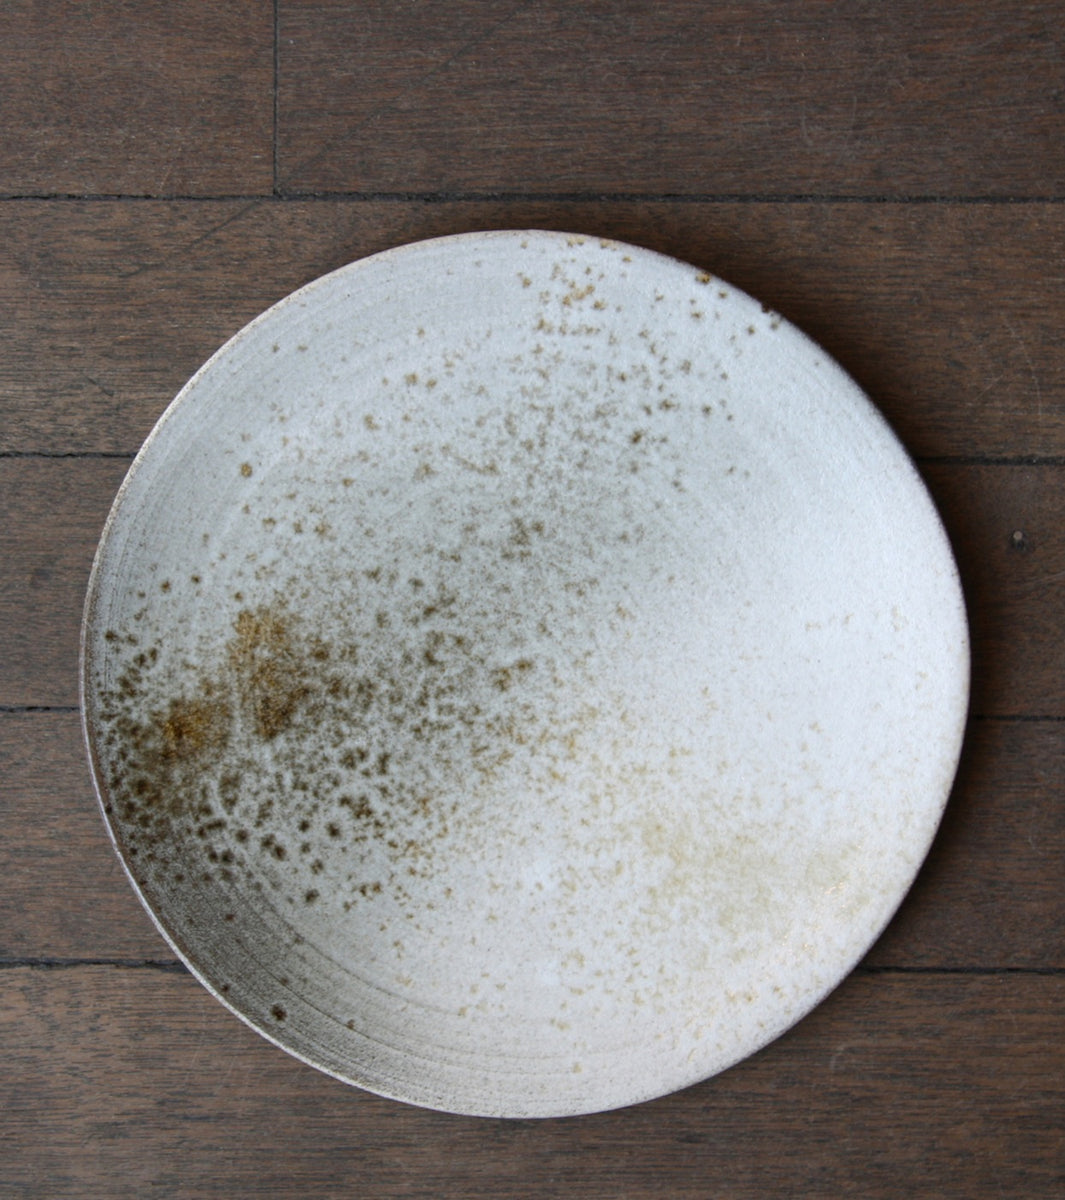 Medium Flat Plate 5White & Brown Glaze Kasper Würtz - Image 7